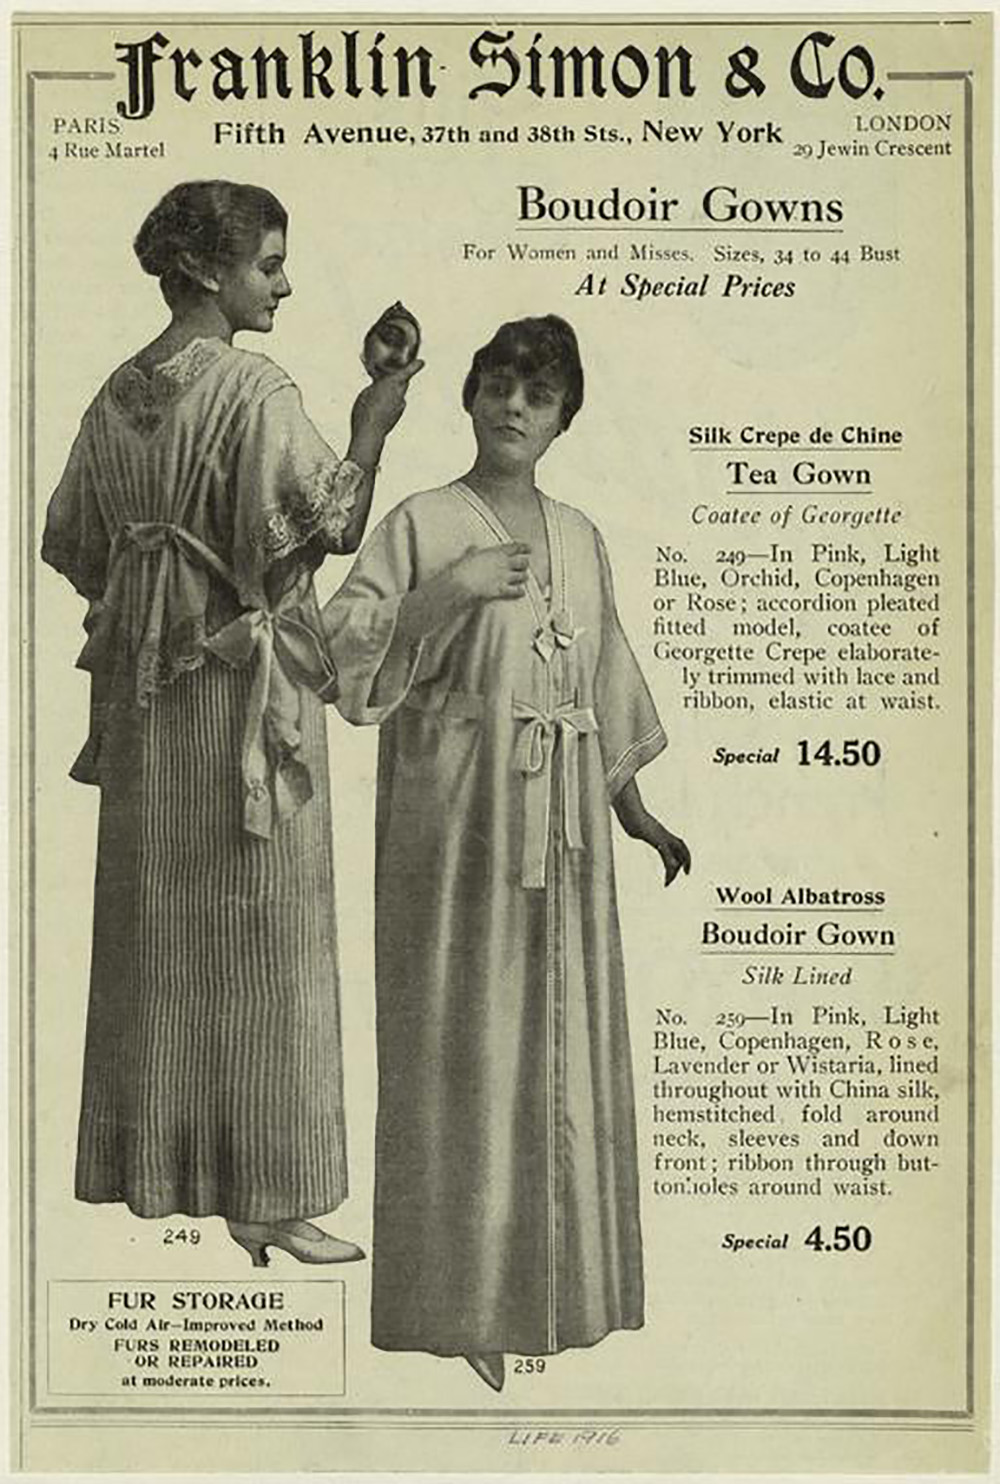 boudoir gowns from 1916